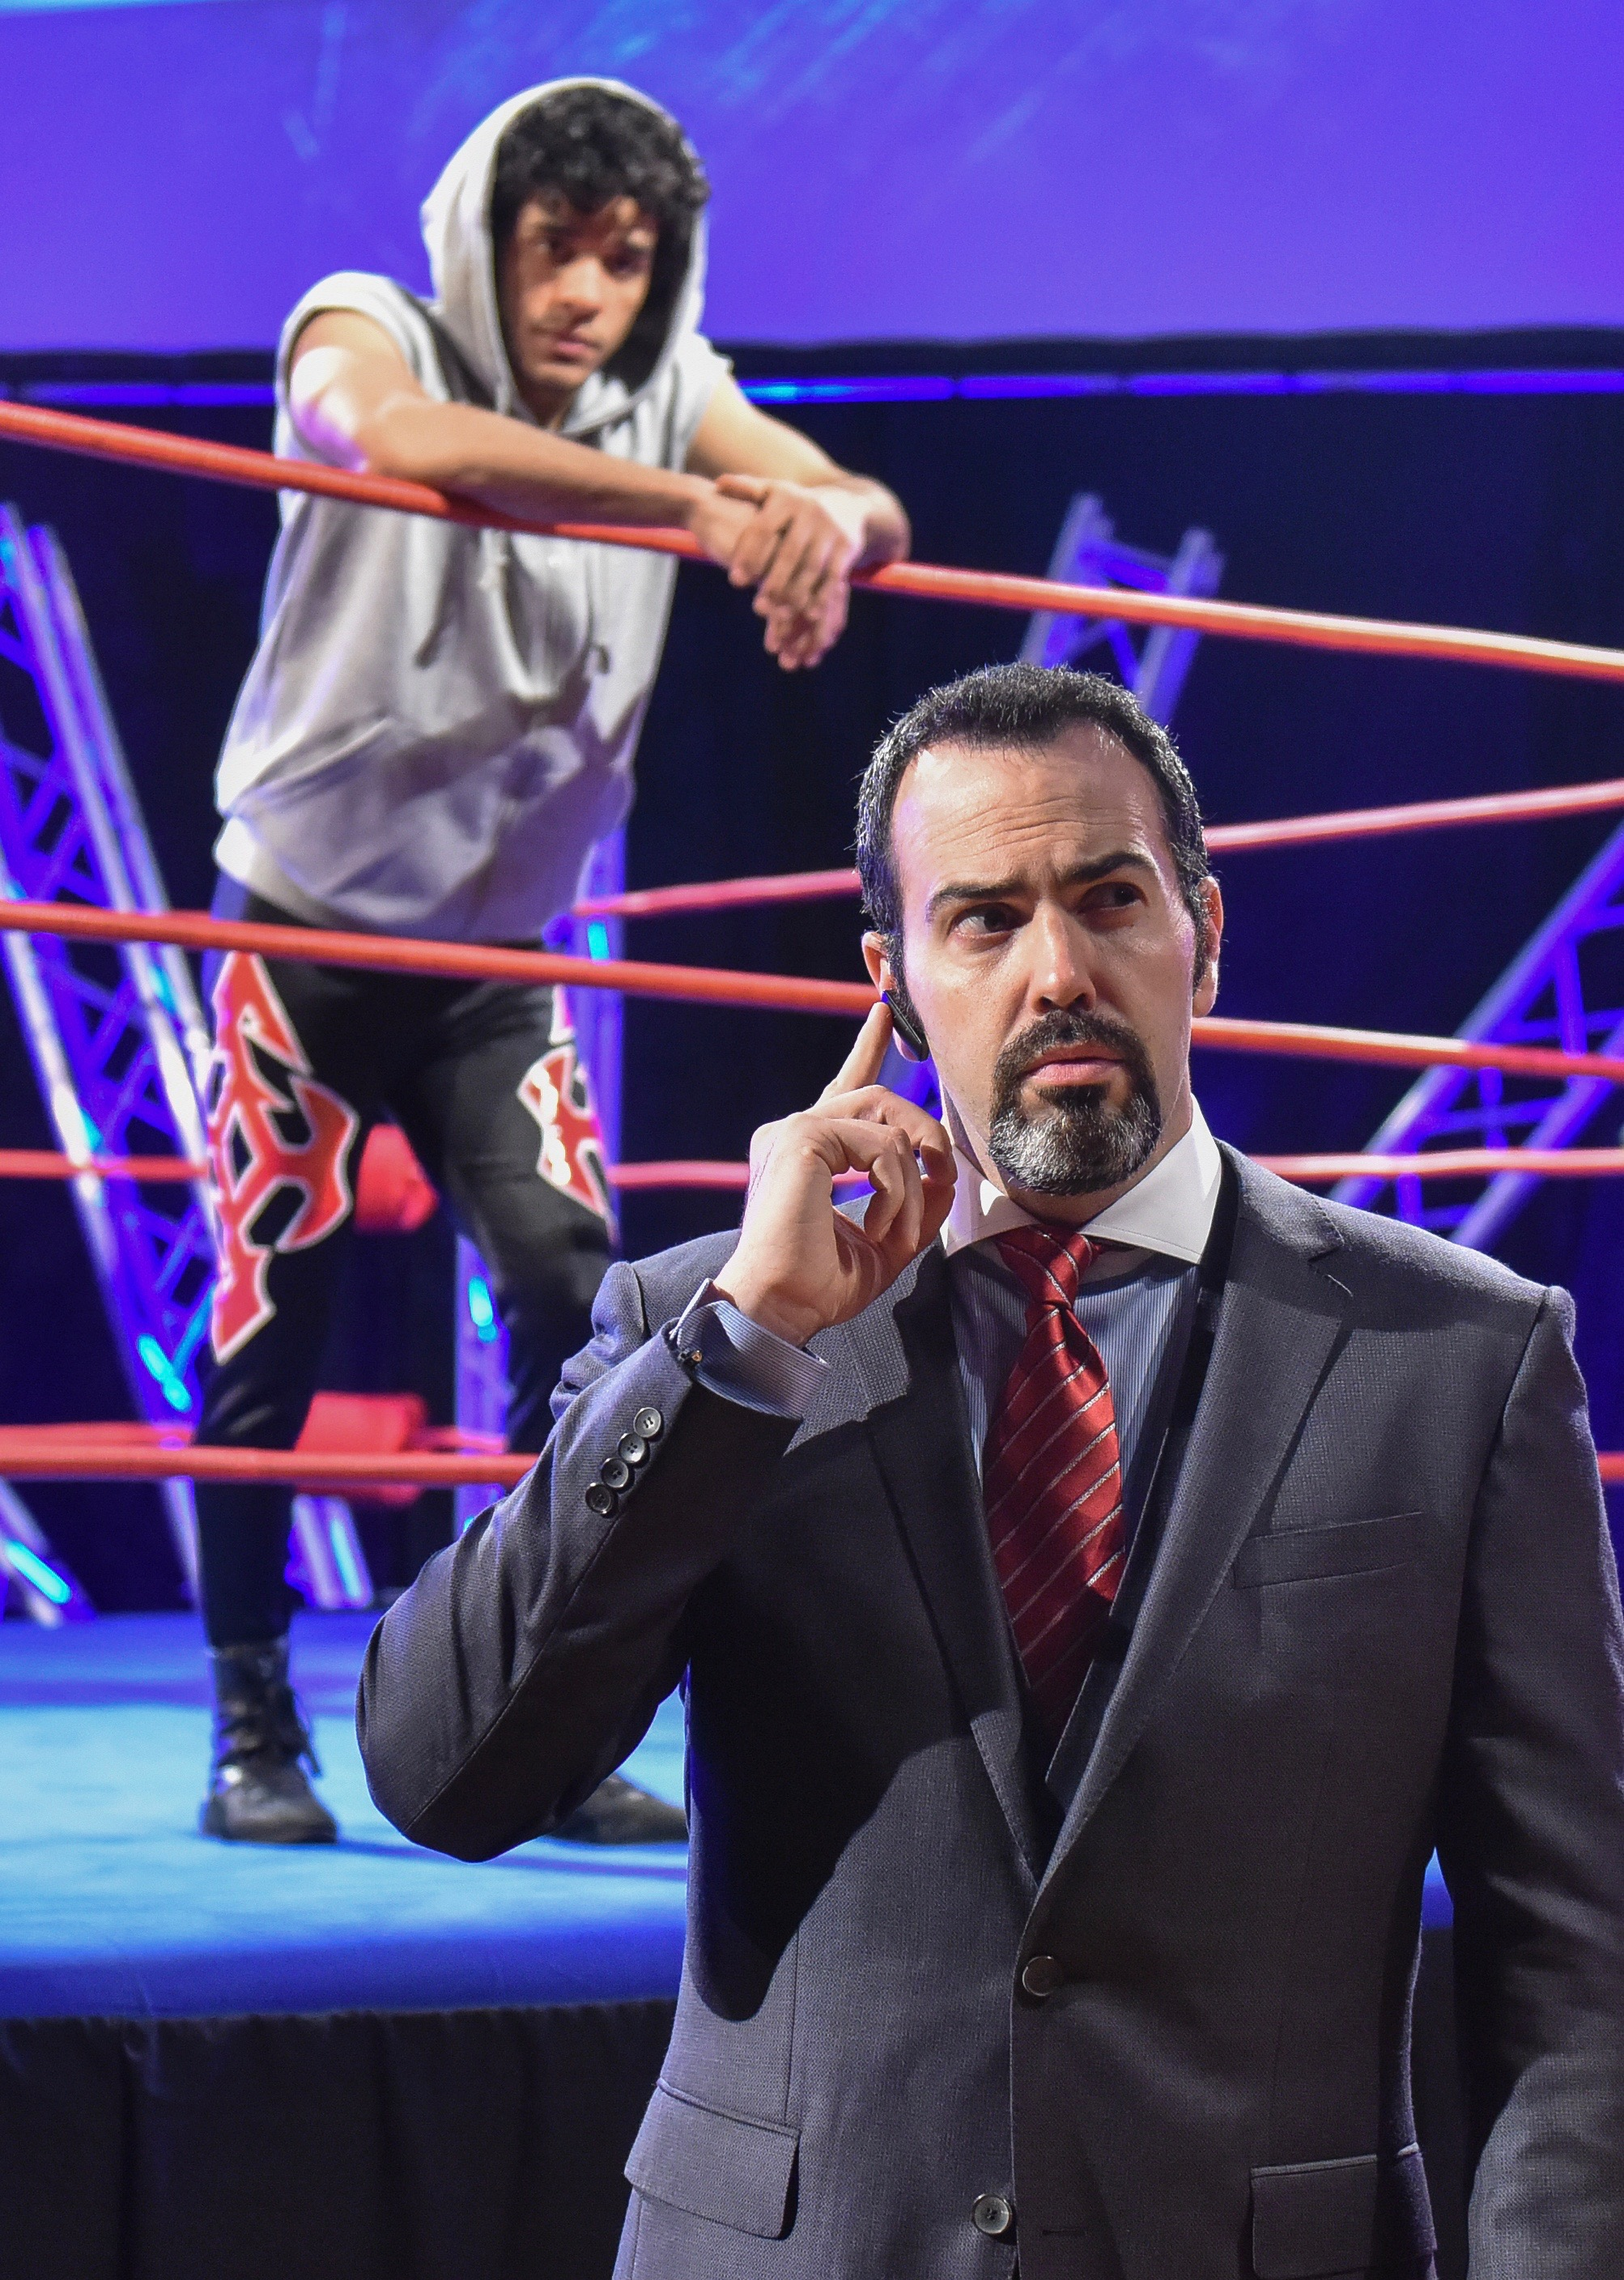 Promoter Everett K. Olson (Patrick Jordan) is the operator who pulls the strings, while Mace (Perez-Abraham, background) awaits his next move.